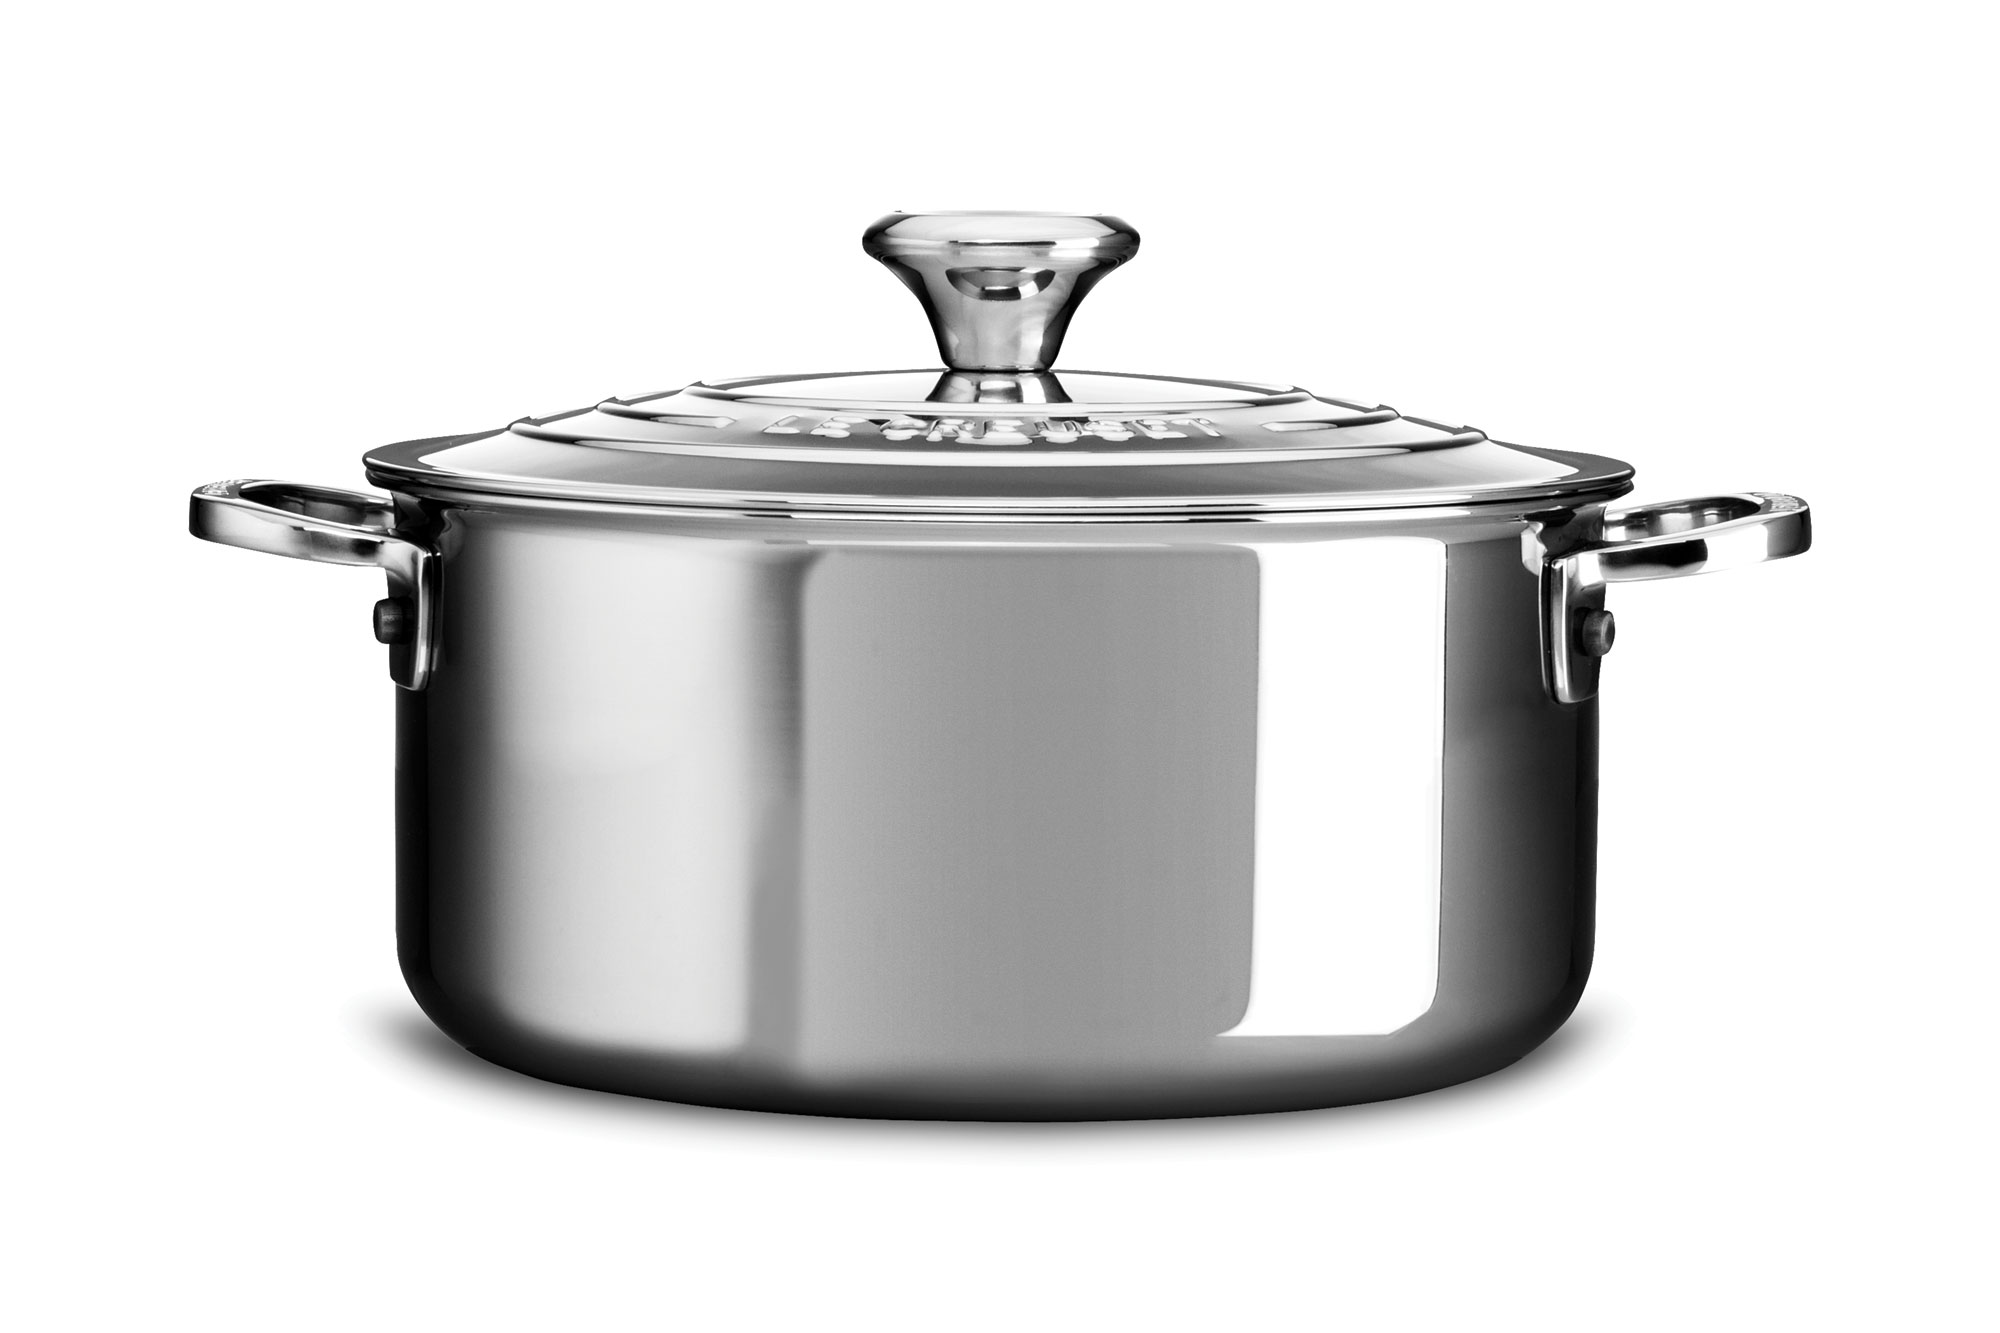 Le Creuset Stainless Steel Dutch Oven 3 Quart Cutlery